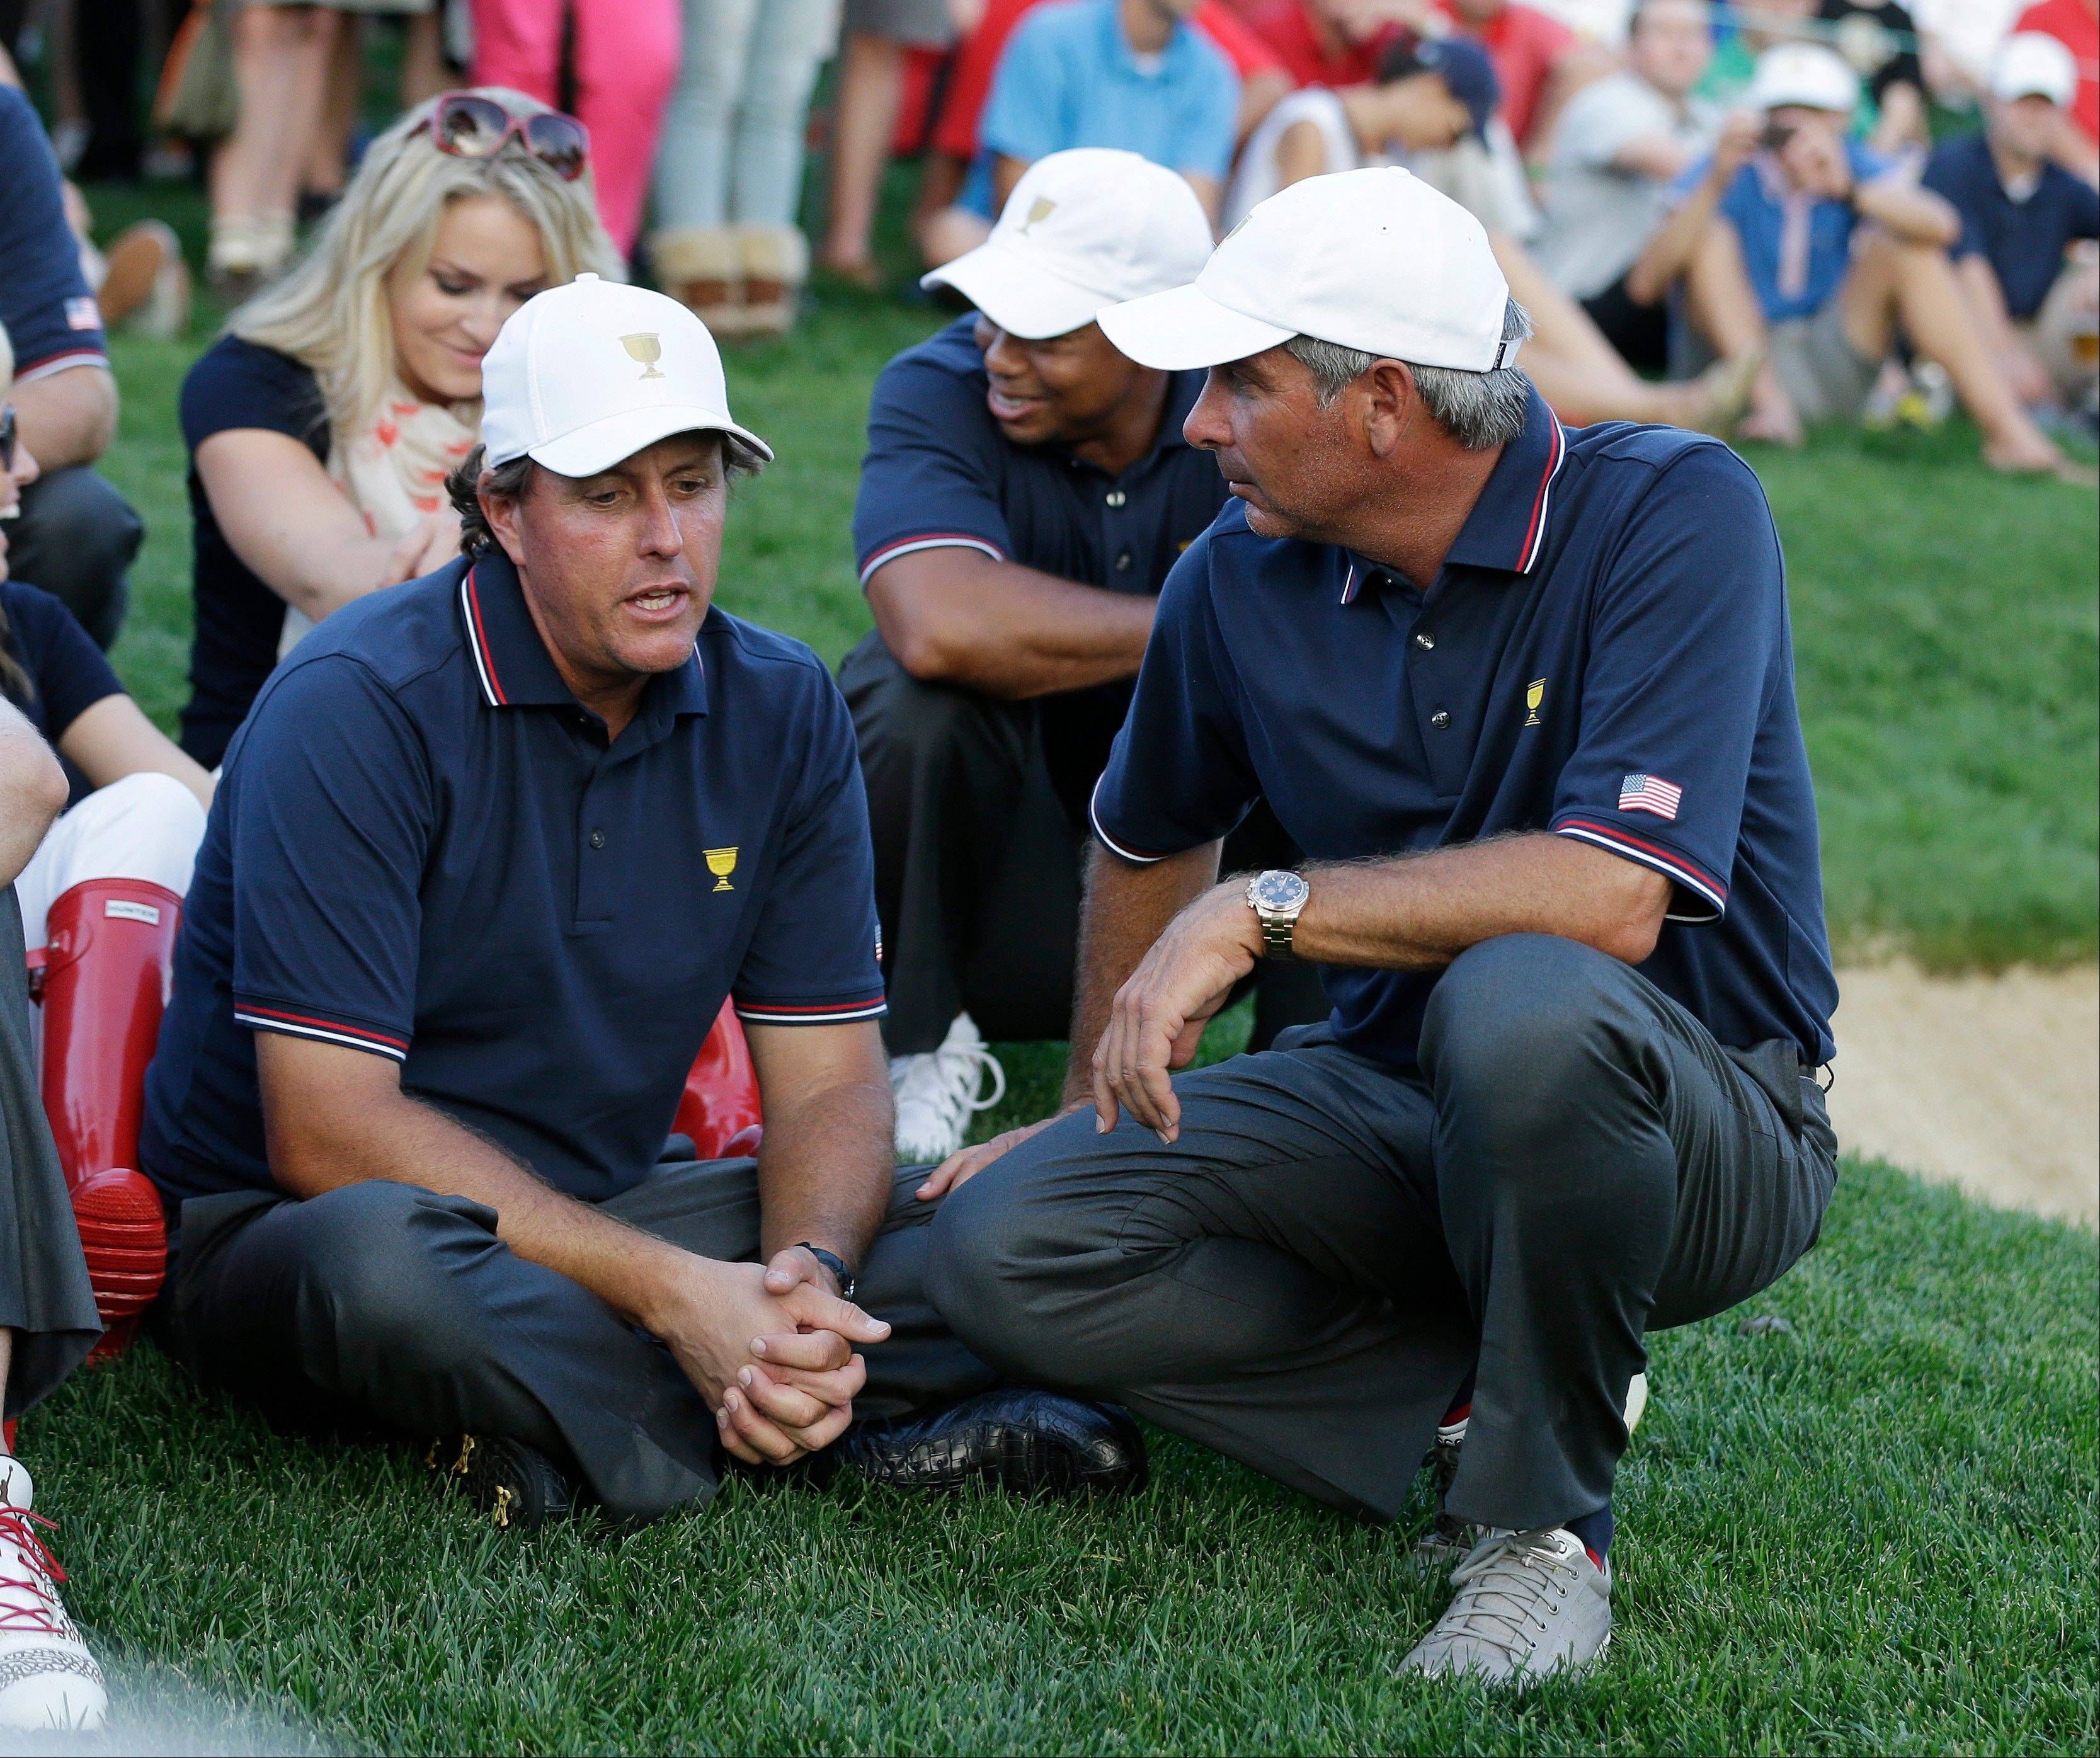 U.S. team captain Fred Couple, left, talks to Phil Mickelson during a four-ball match Thursday at the Presidents Cup golf tournament at Muirfield Village Golf Club in Dublin, Ohio.